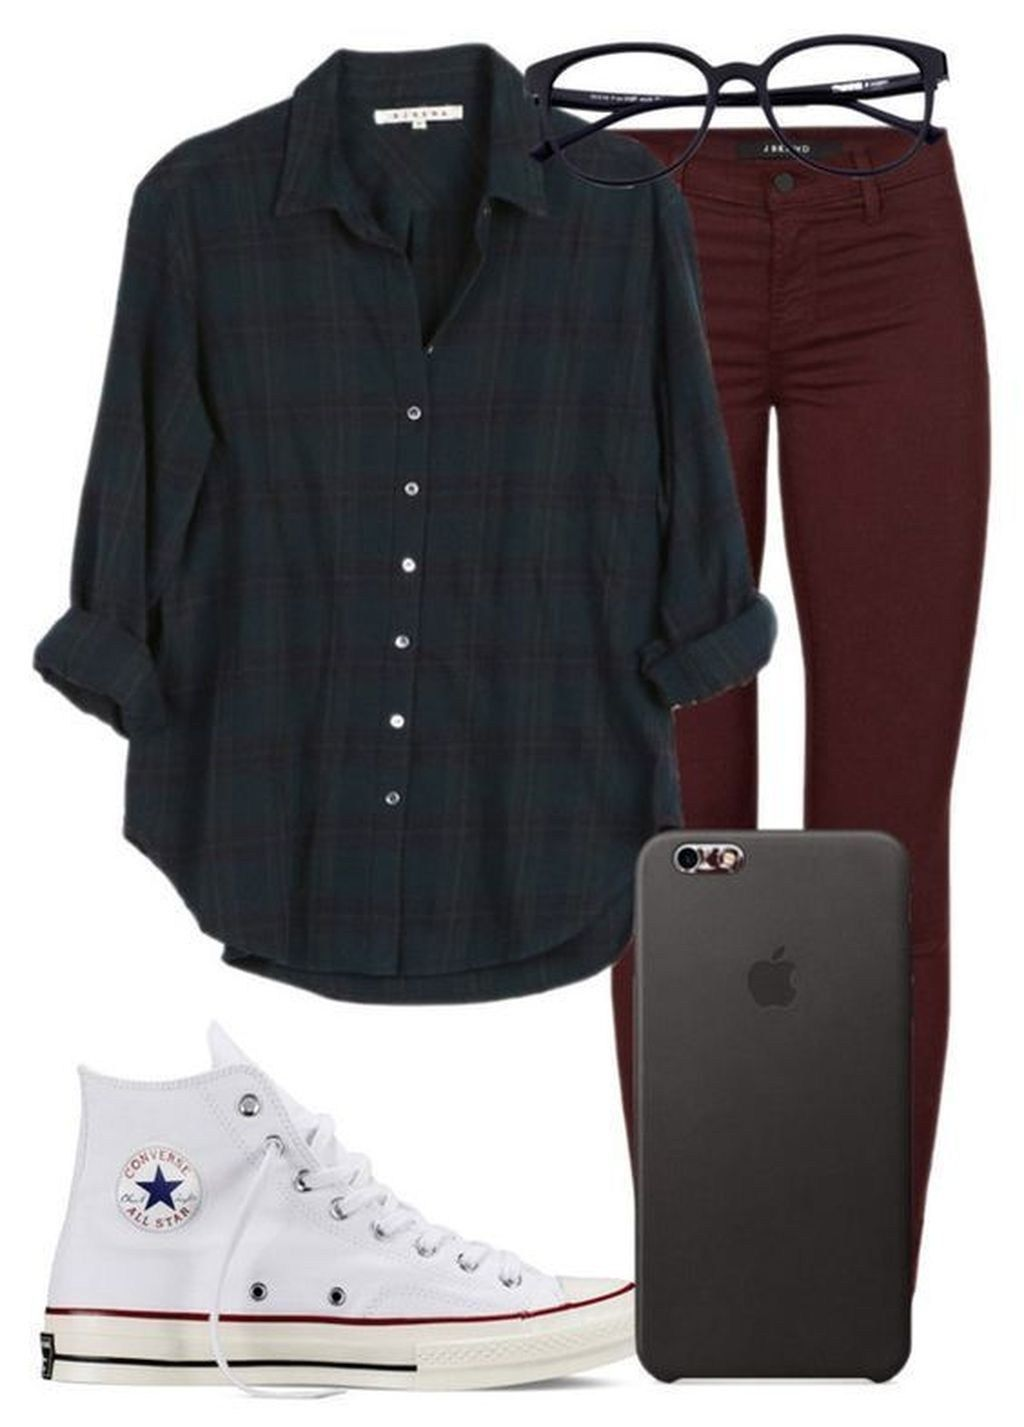 53+ Stunning Fall Outfits Ideas To Wear At School